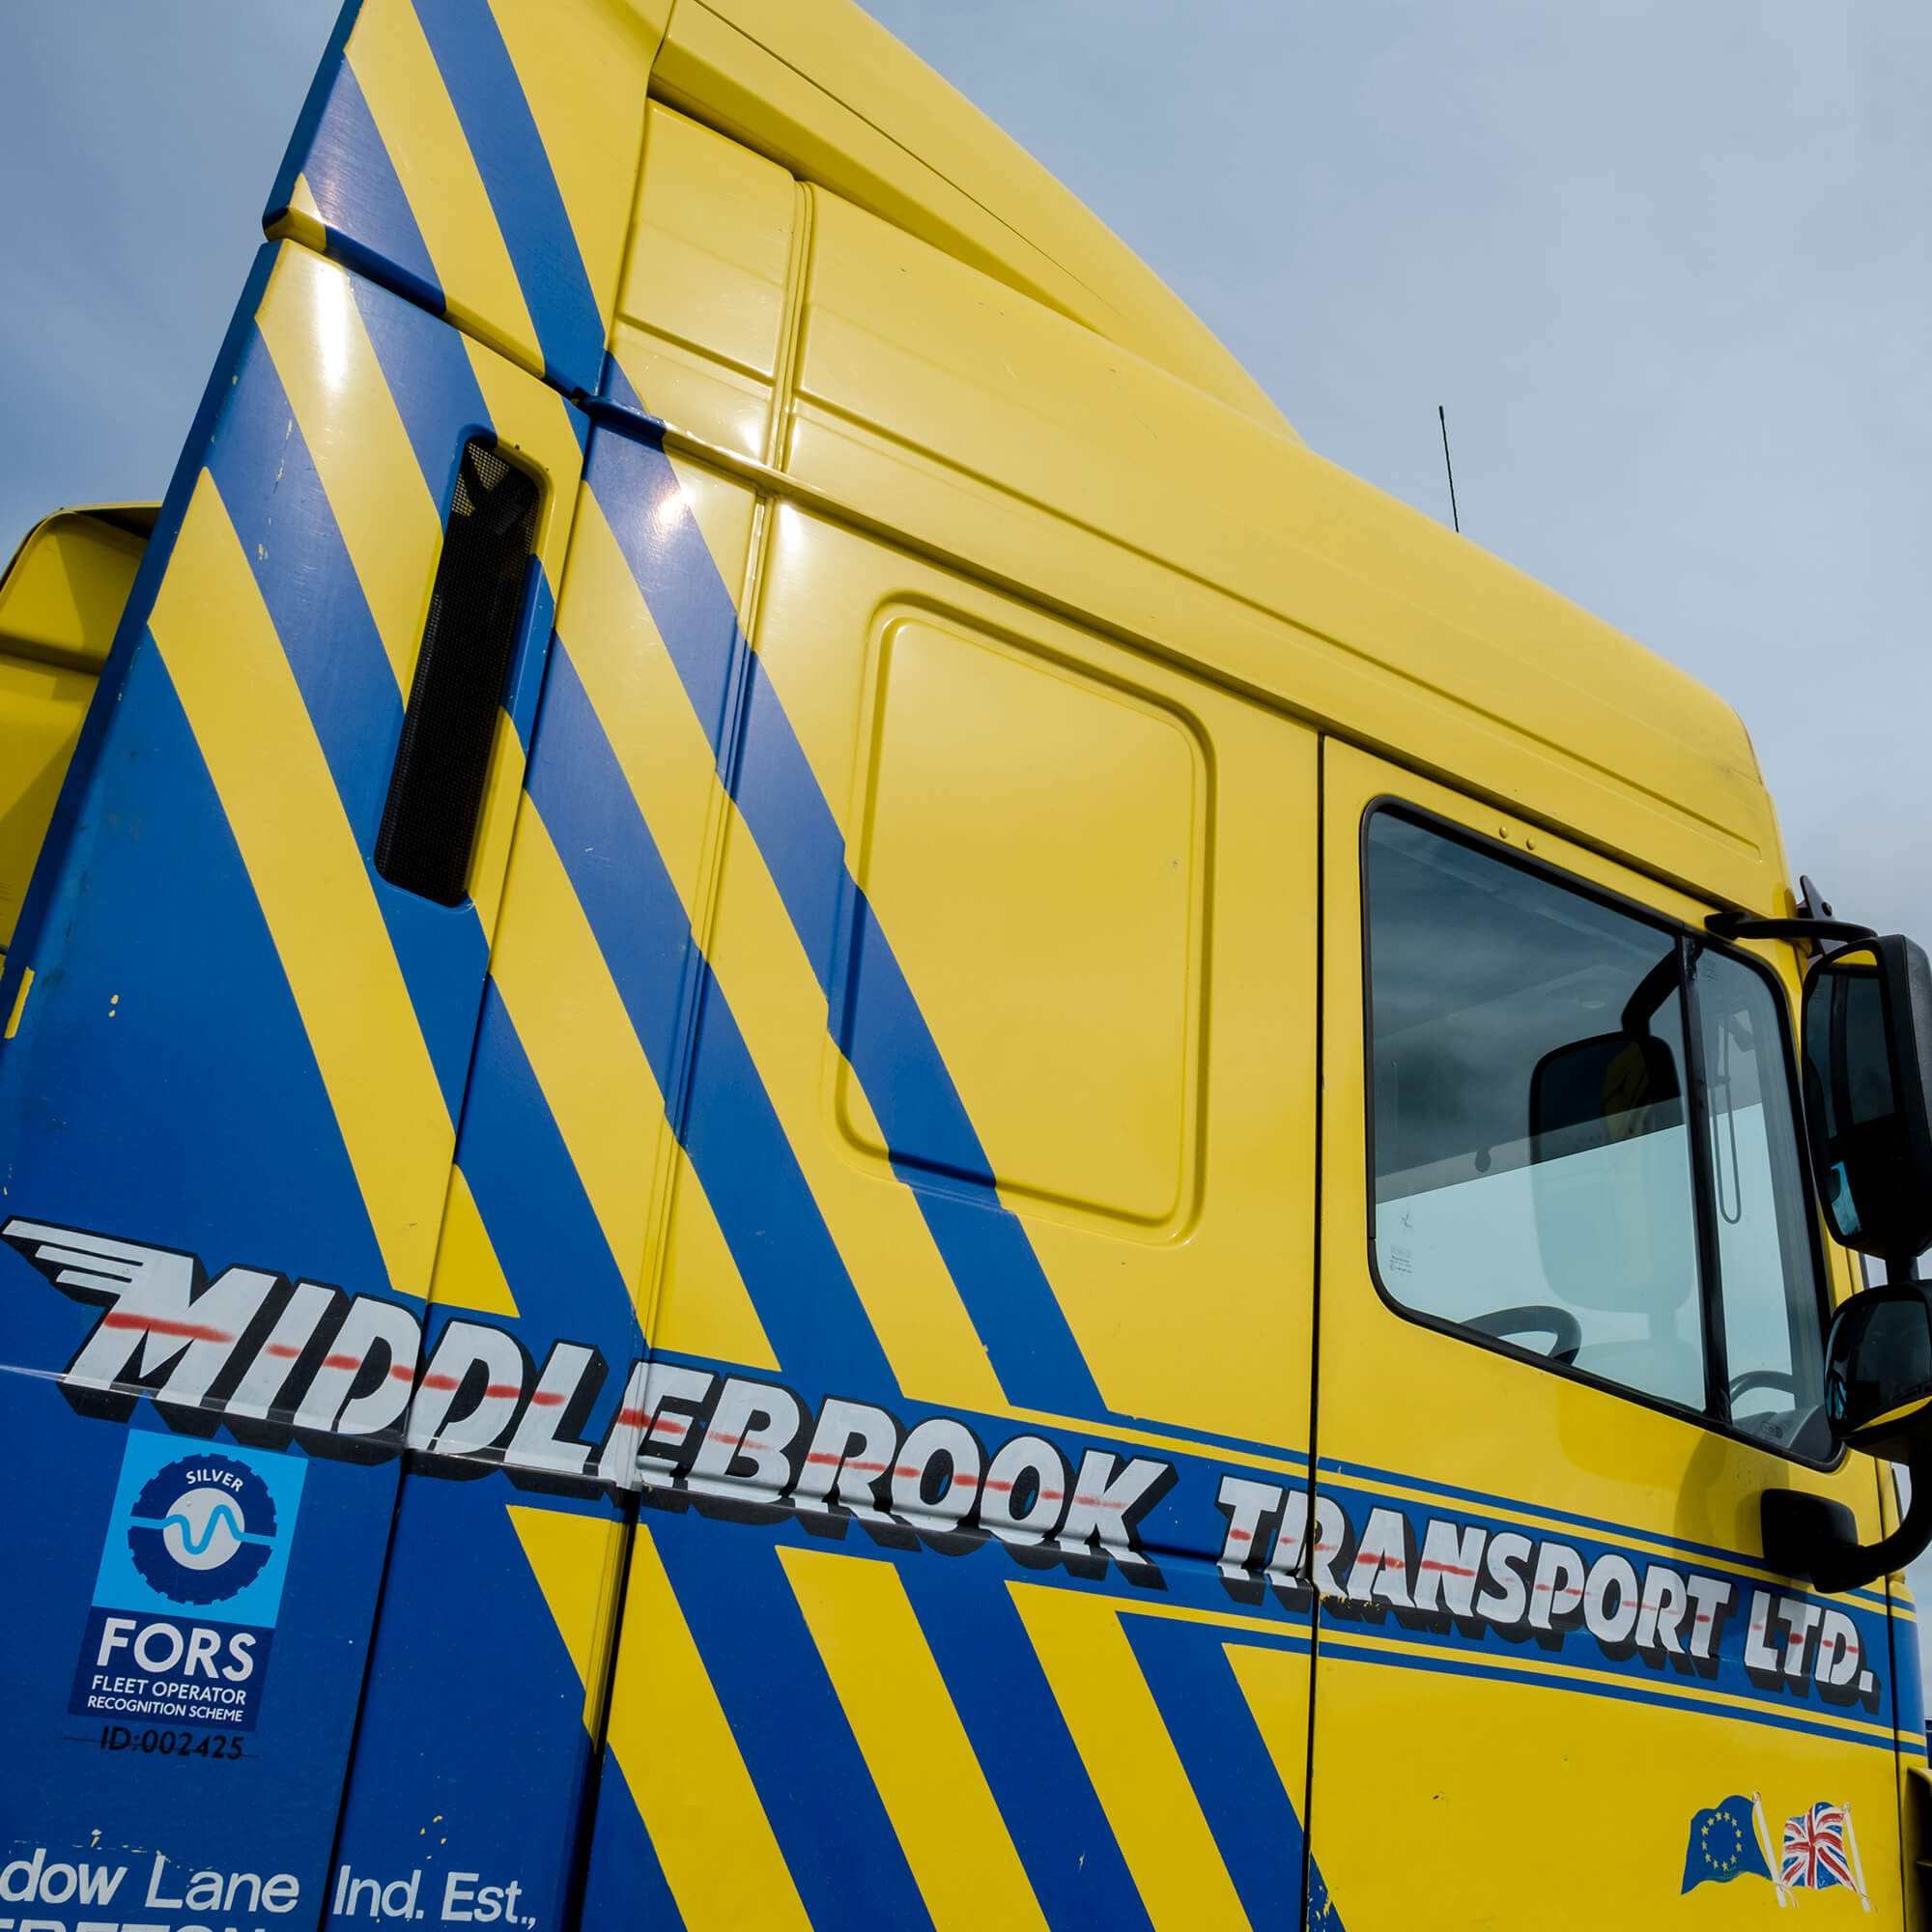 Middlebrook lorry cab - yellow and blue